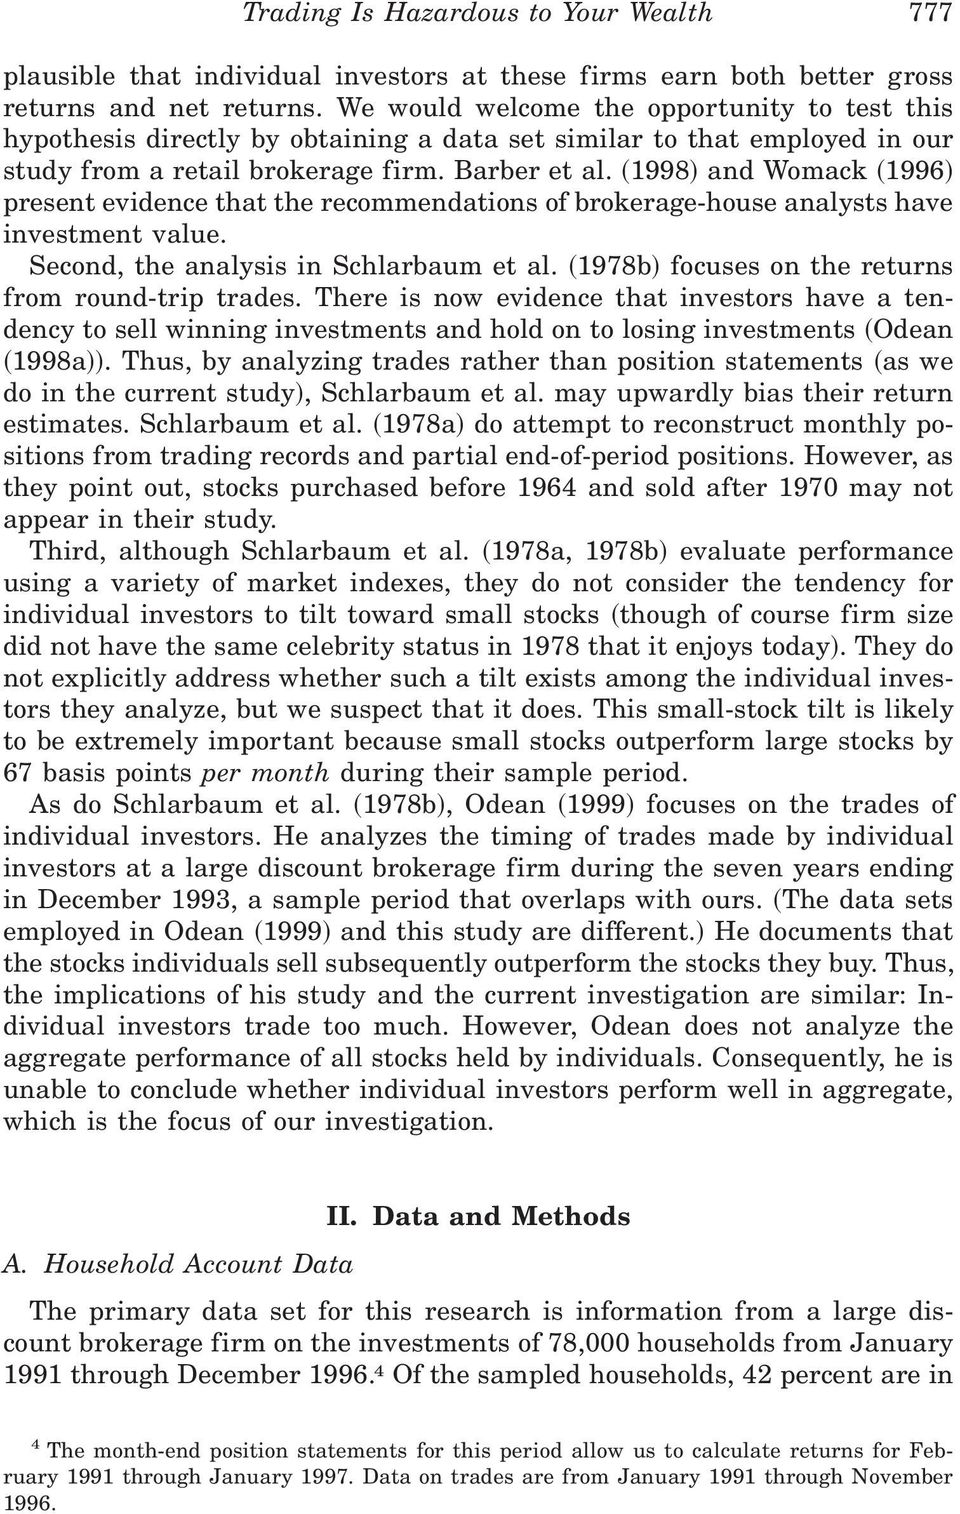 present evidence that the recommendations of brokerage-house analysts have investment value. Second, the analysis in Schlarbaum et al. ~1978b! focuses on the returns from round-trip trades.